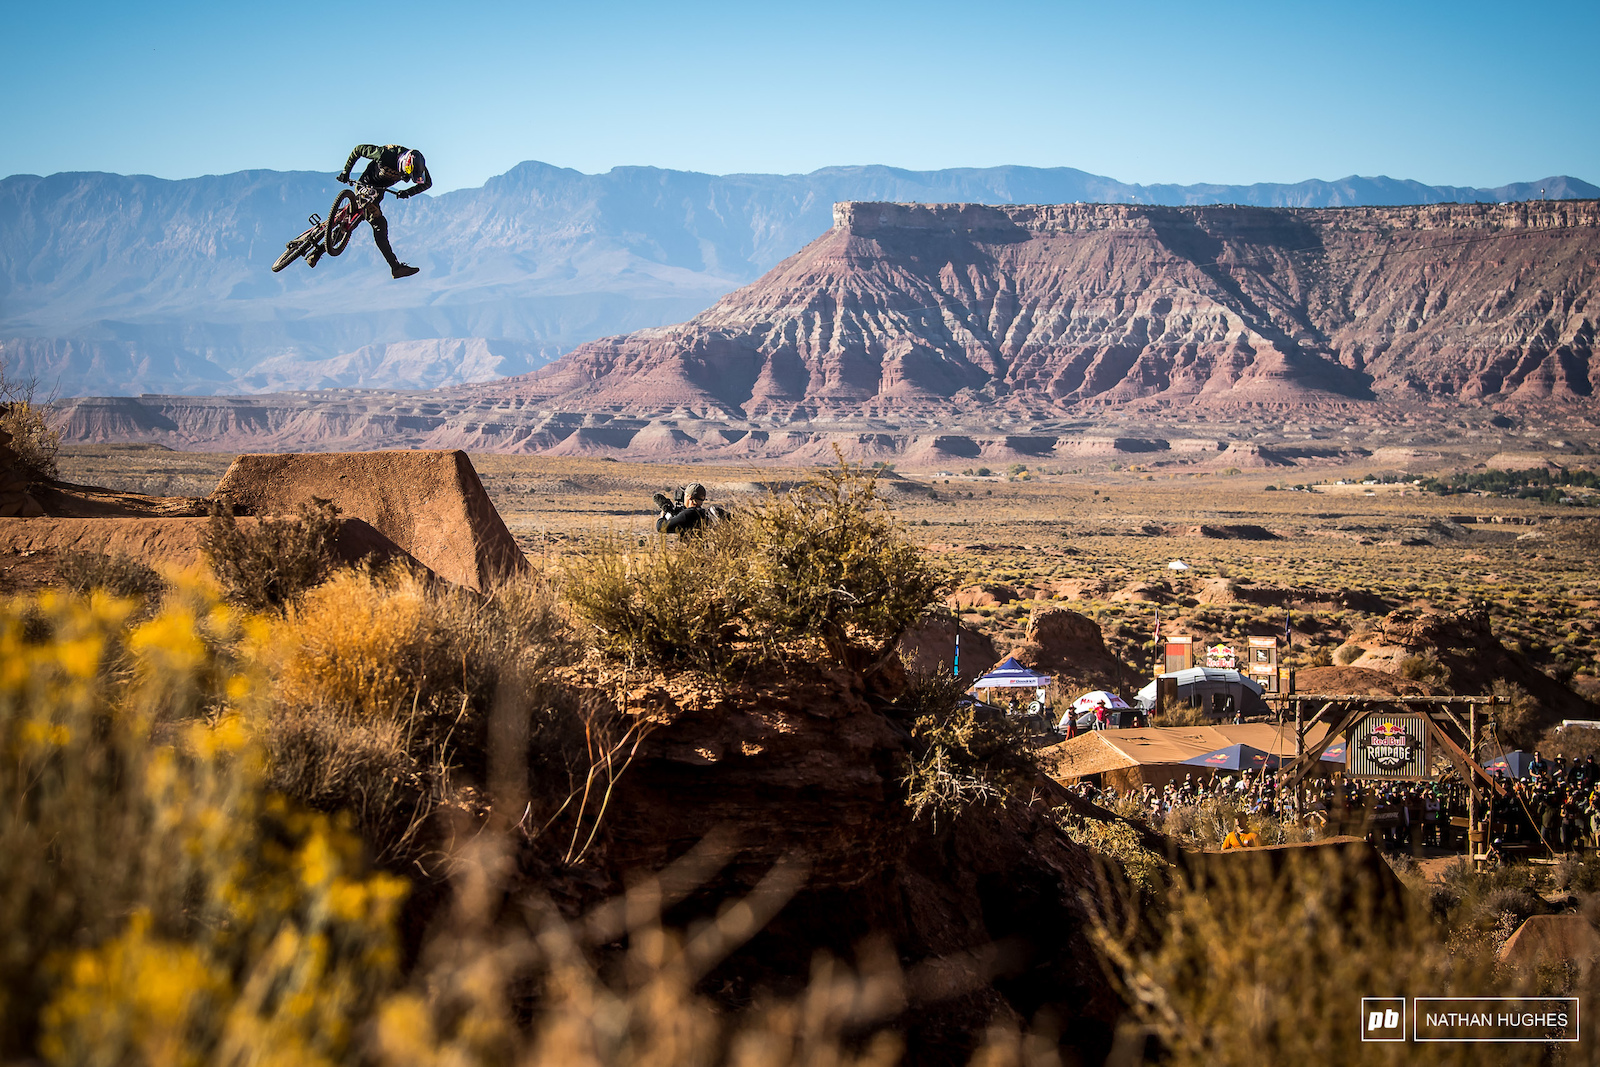 Semenuk putting the icing on the cake for Rampage 2019 on his victory lap.